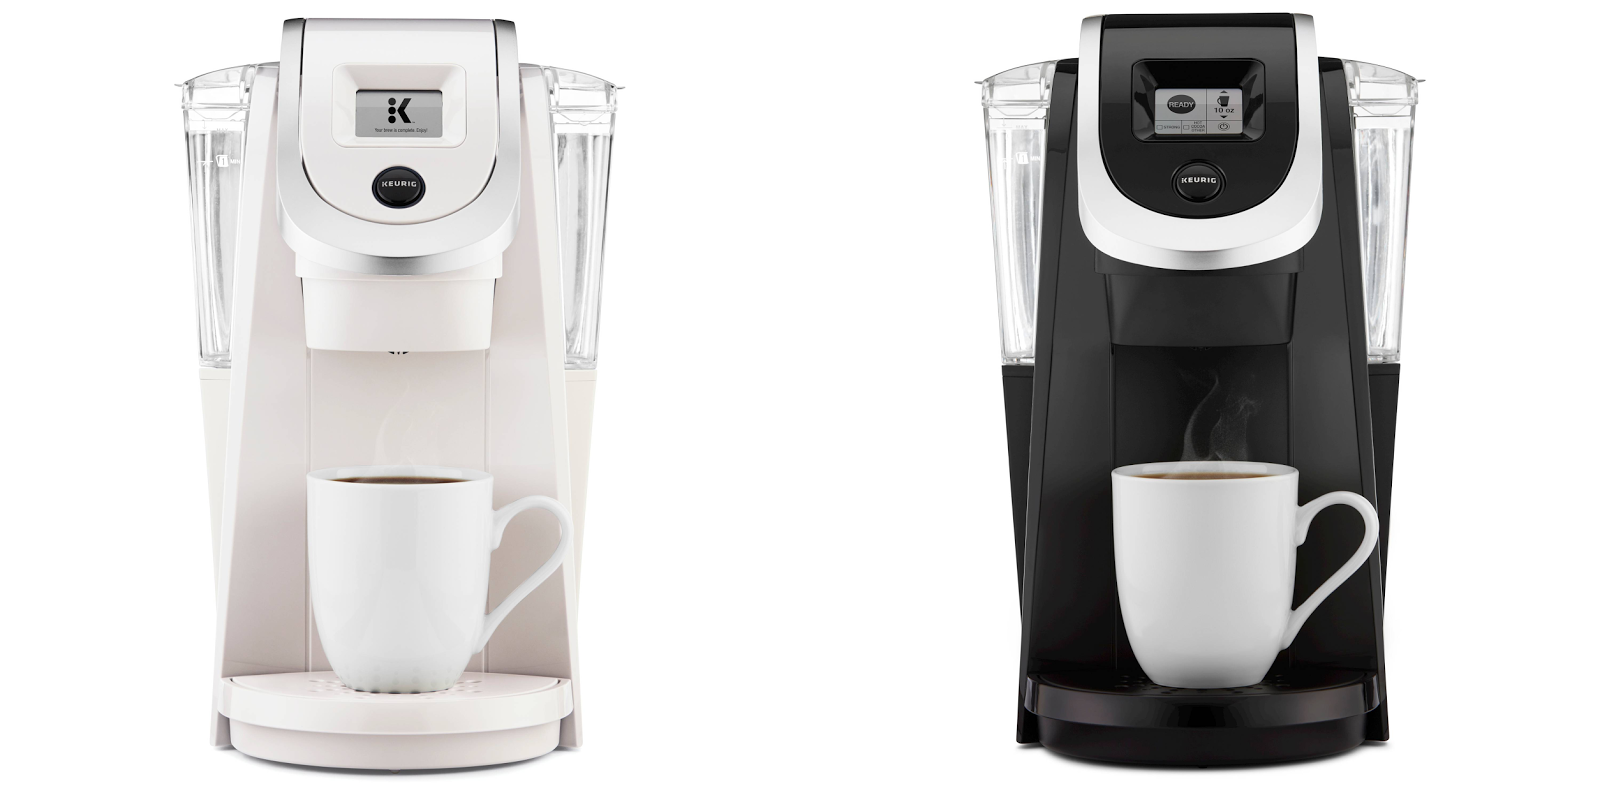 Target Offers A 20 Gift Card When You Purchase Keurig K200 Coffee Maker Brewing System Its Currently On Sale For 9999 And Youl Get Back